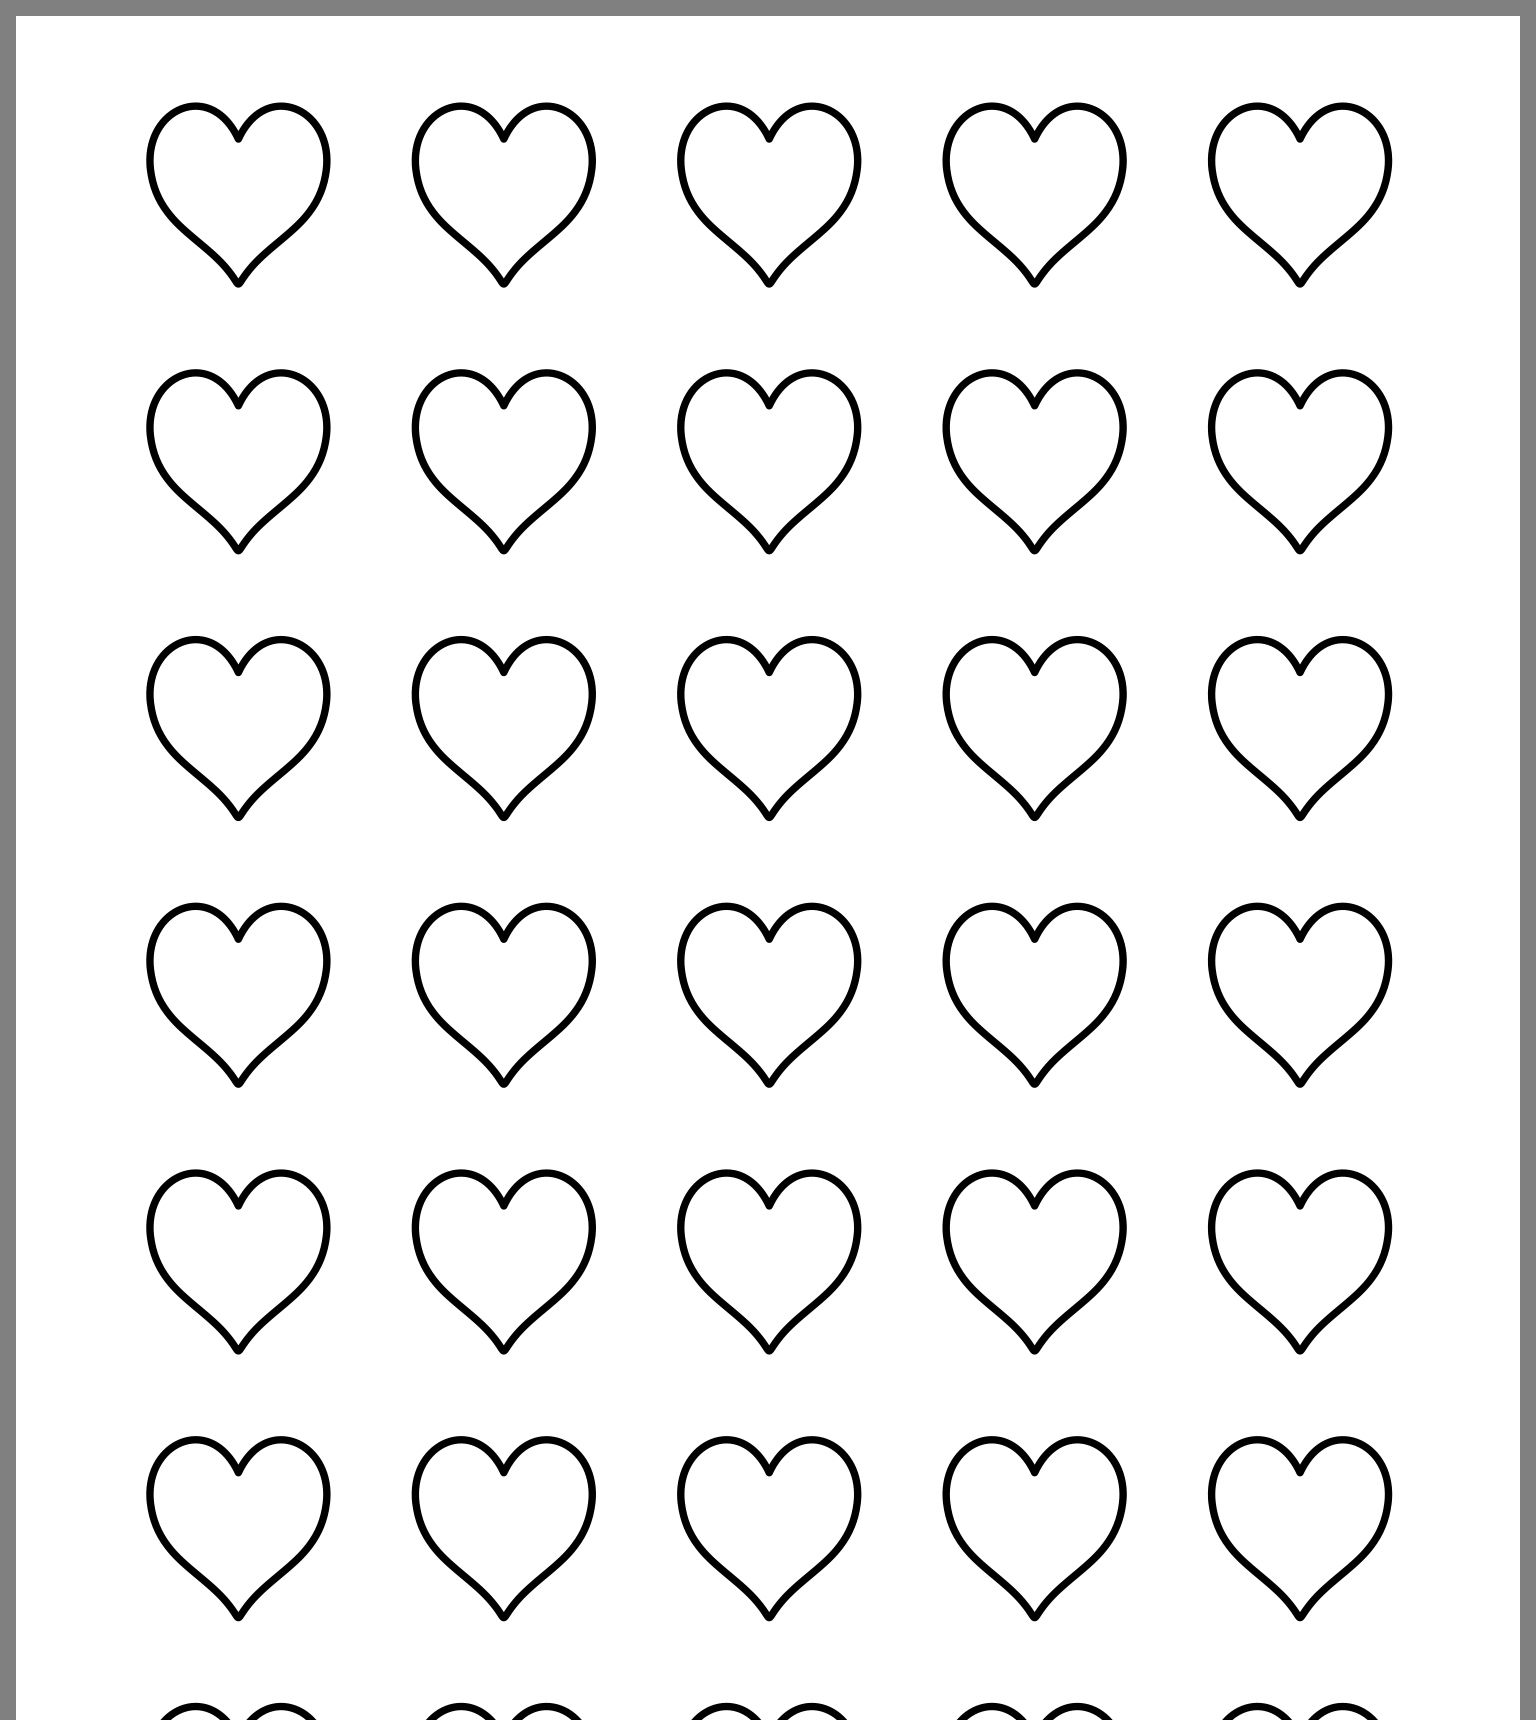 origami heart instructions printable pin by roxanne loughery on breads in 2020 heart patterns origami heart printable instructions